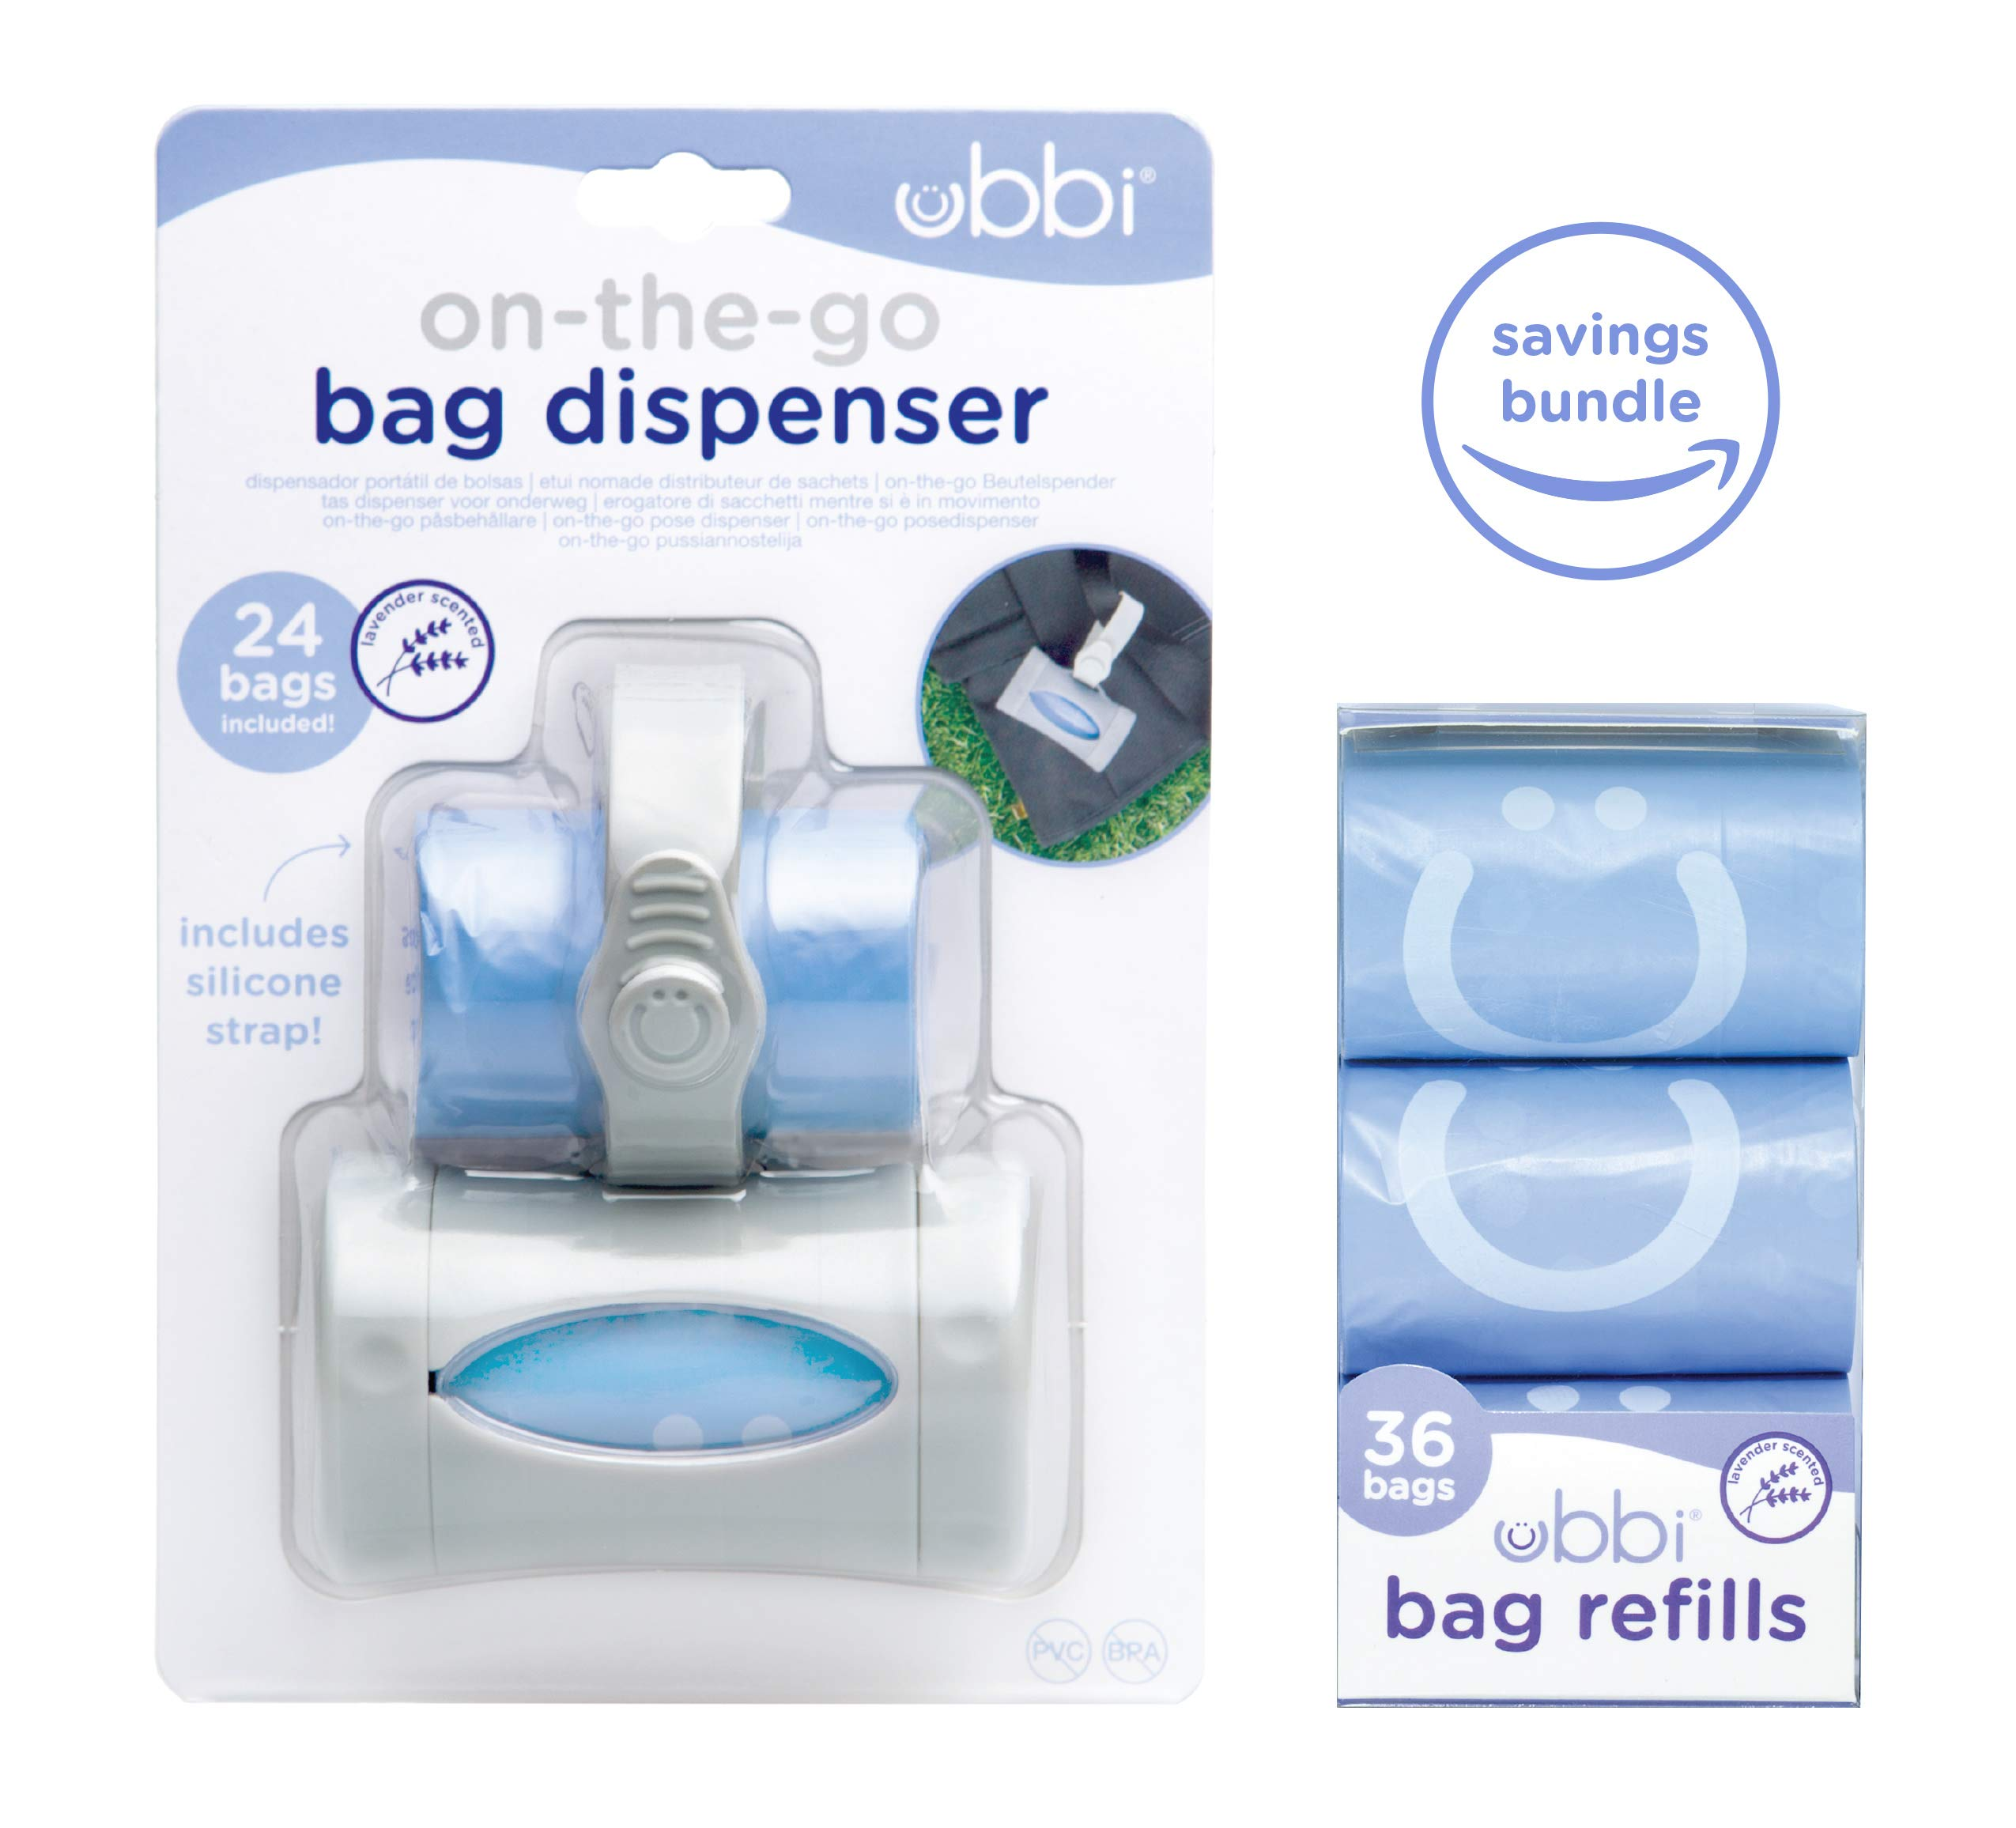 Amazon.com : Ubbi On The Go Gray Bag Dispenser and Waste Disposal Bags Refill, Lavender Scented, Baby Savings Bundle : Baby